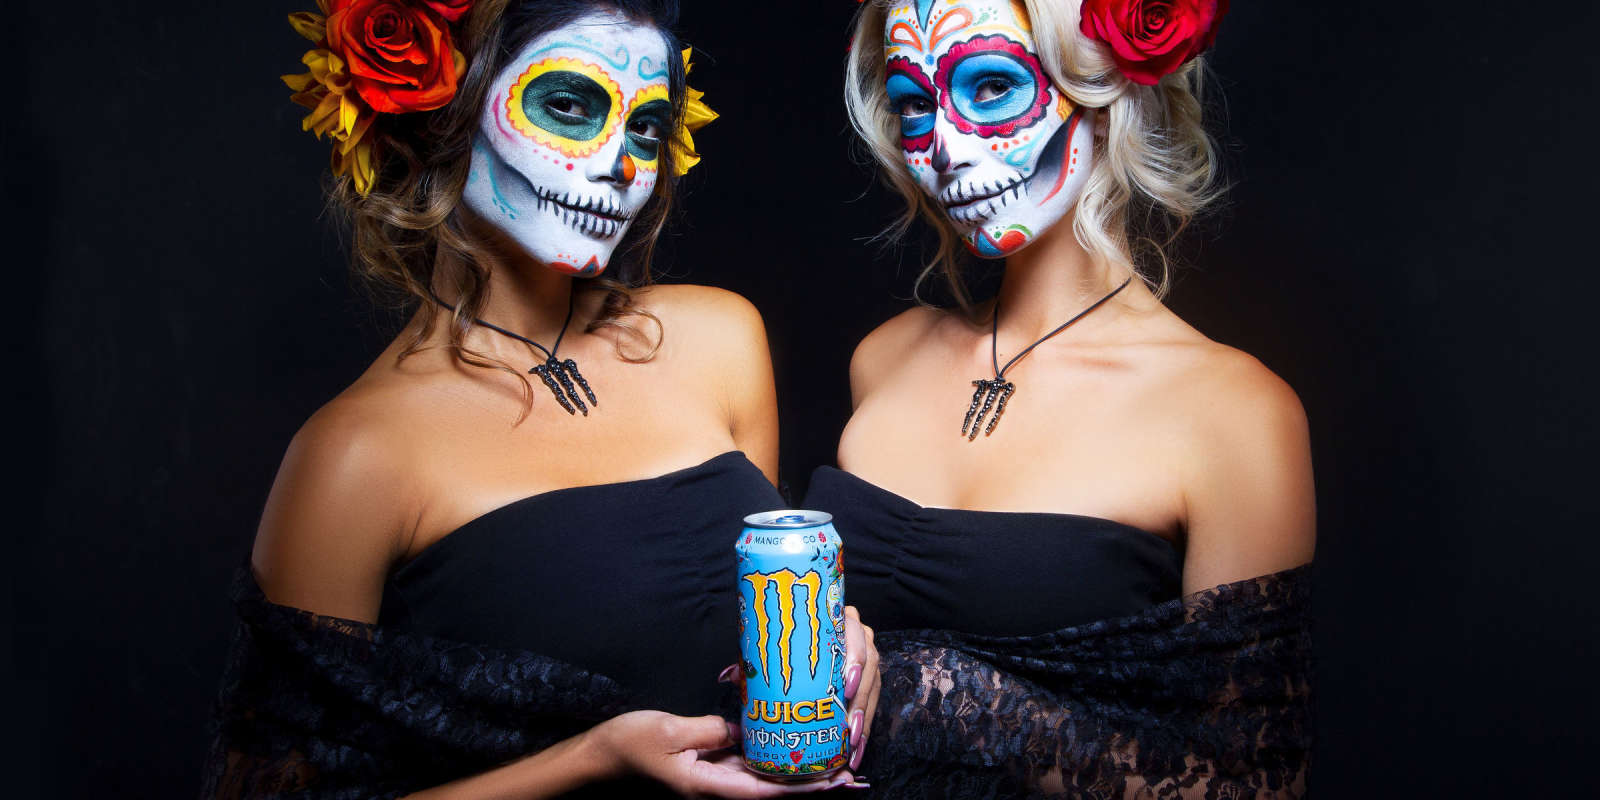 Day of the Dead Images with Monster Girls and Juice Mango Loco. For Monster Use Only until Nov 5th, 2018